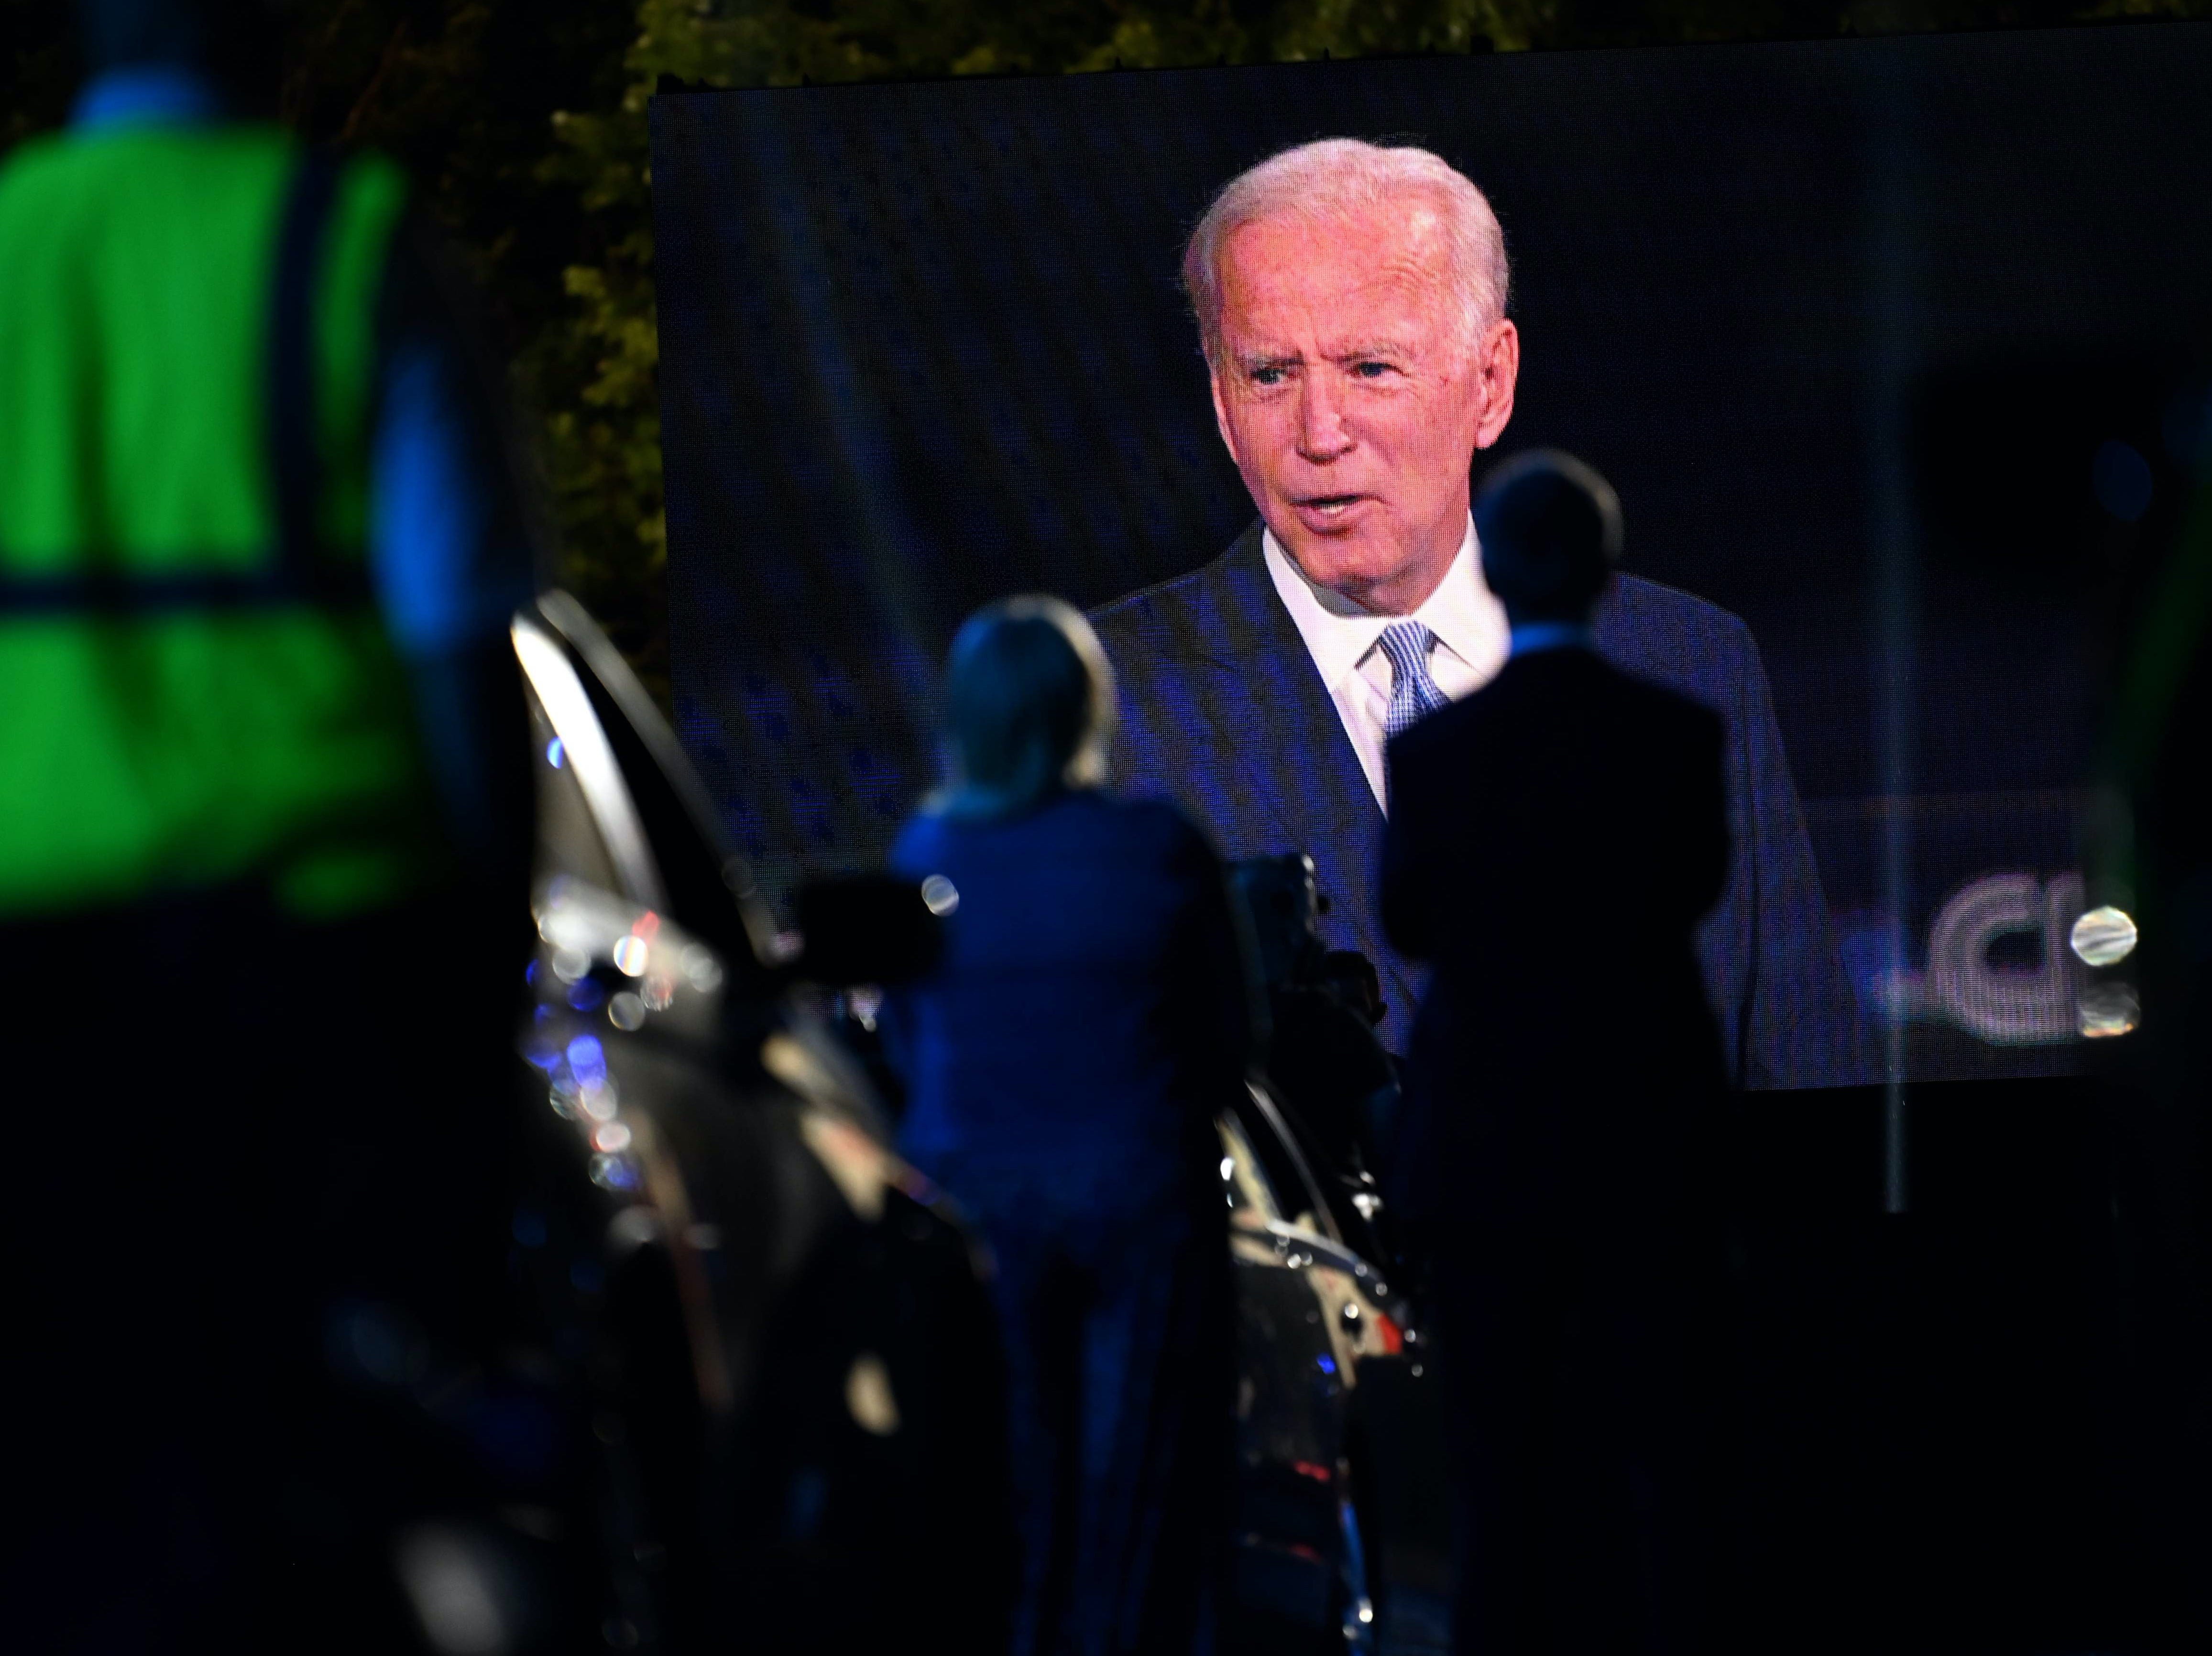 'As good as anybody else': Biden touts working-class background and says Trump 'squandered' advantages